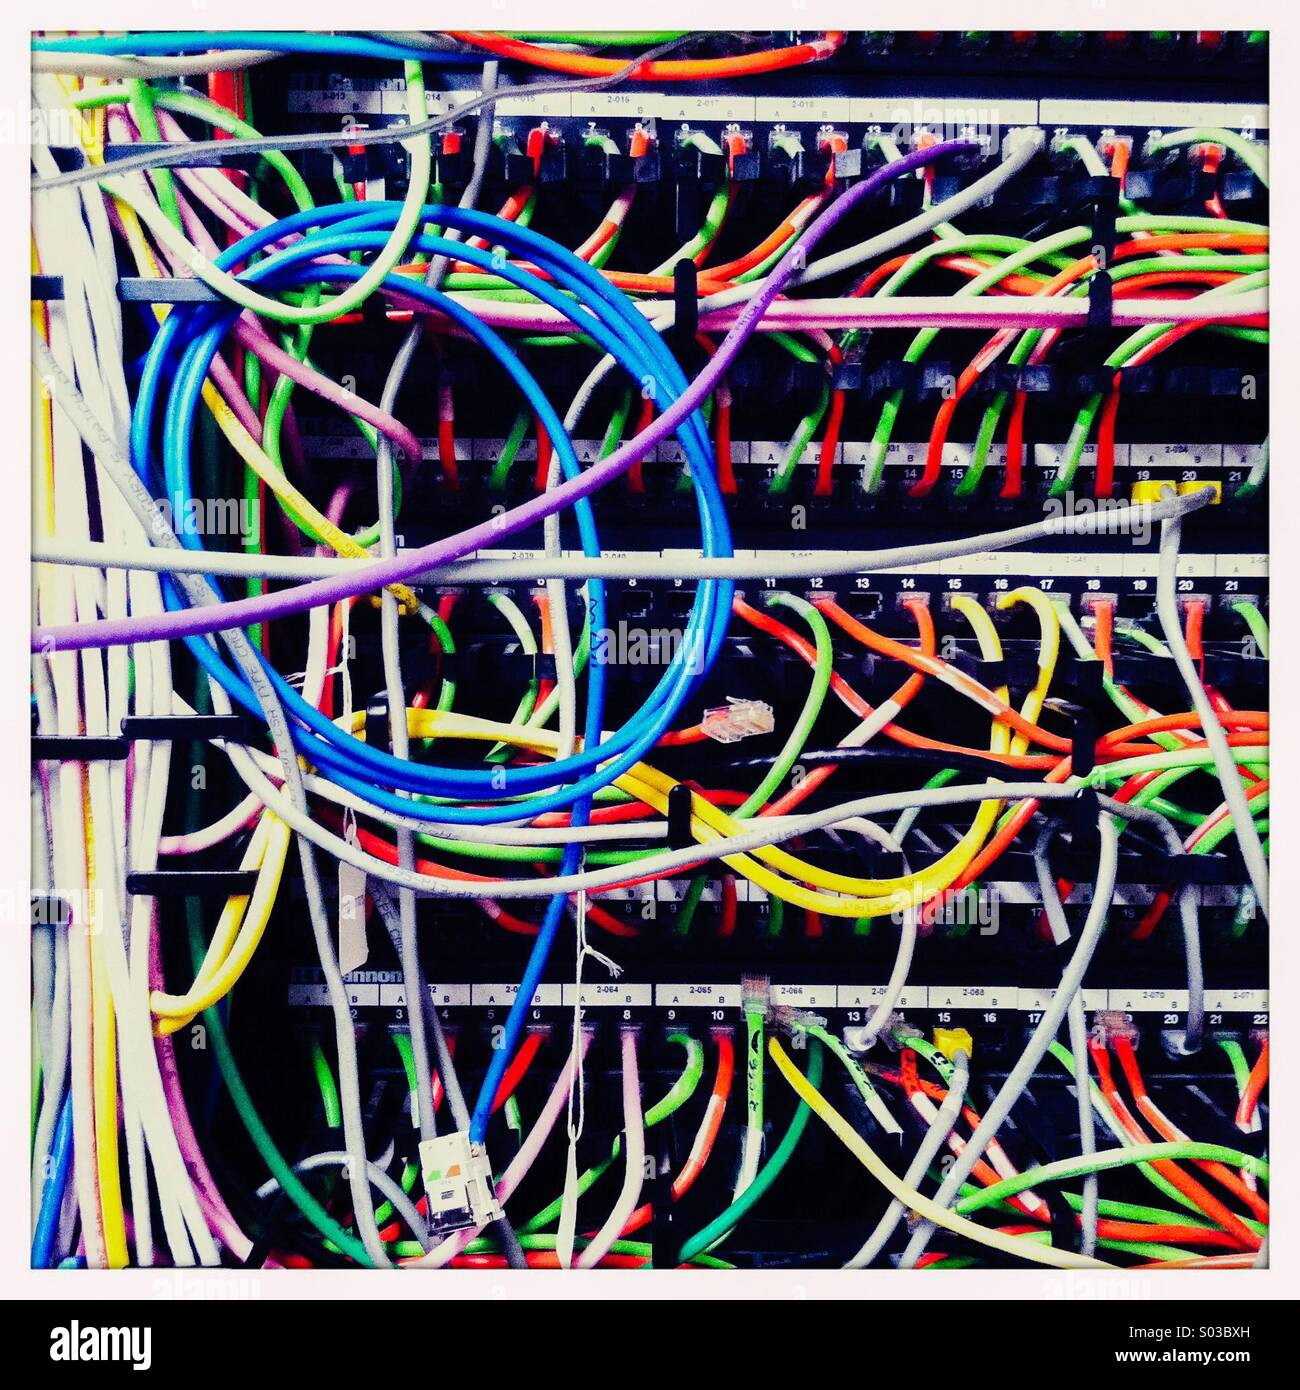 The inside of a telecommunications unit with multiple colored wires. - Stock Image